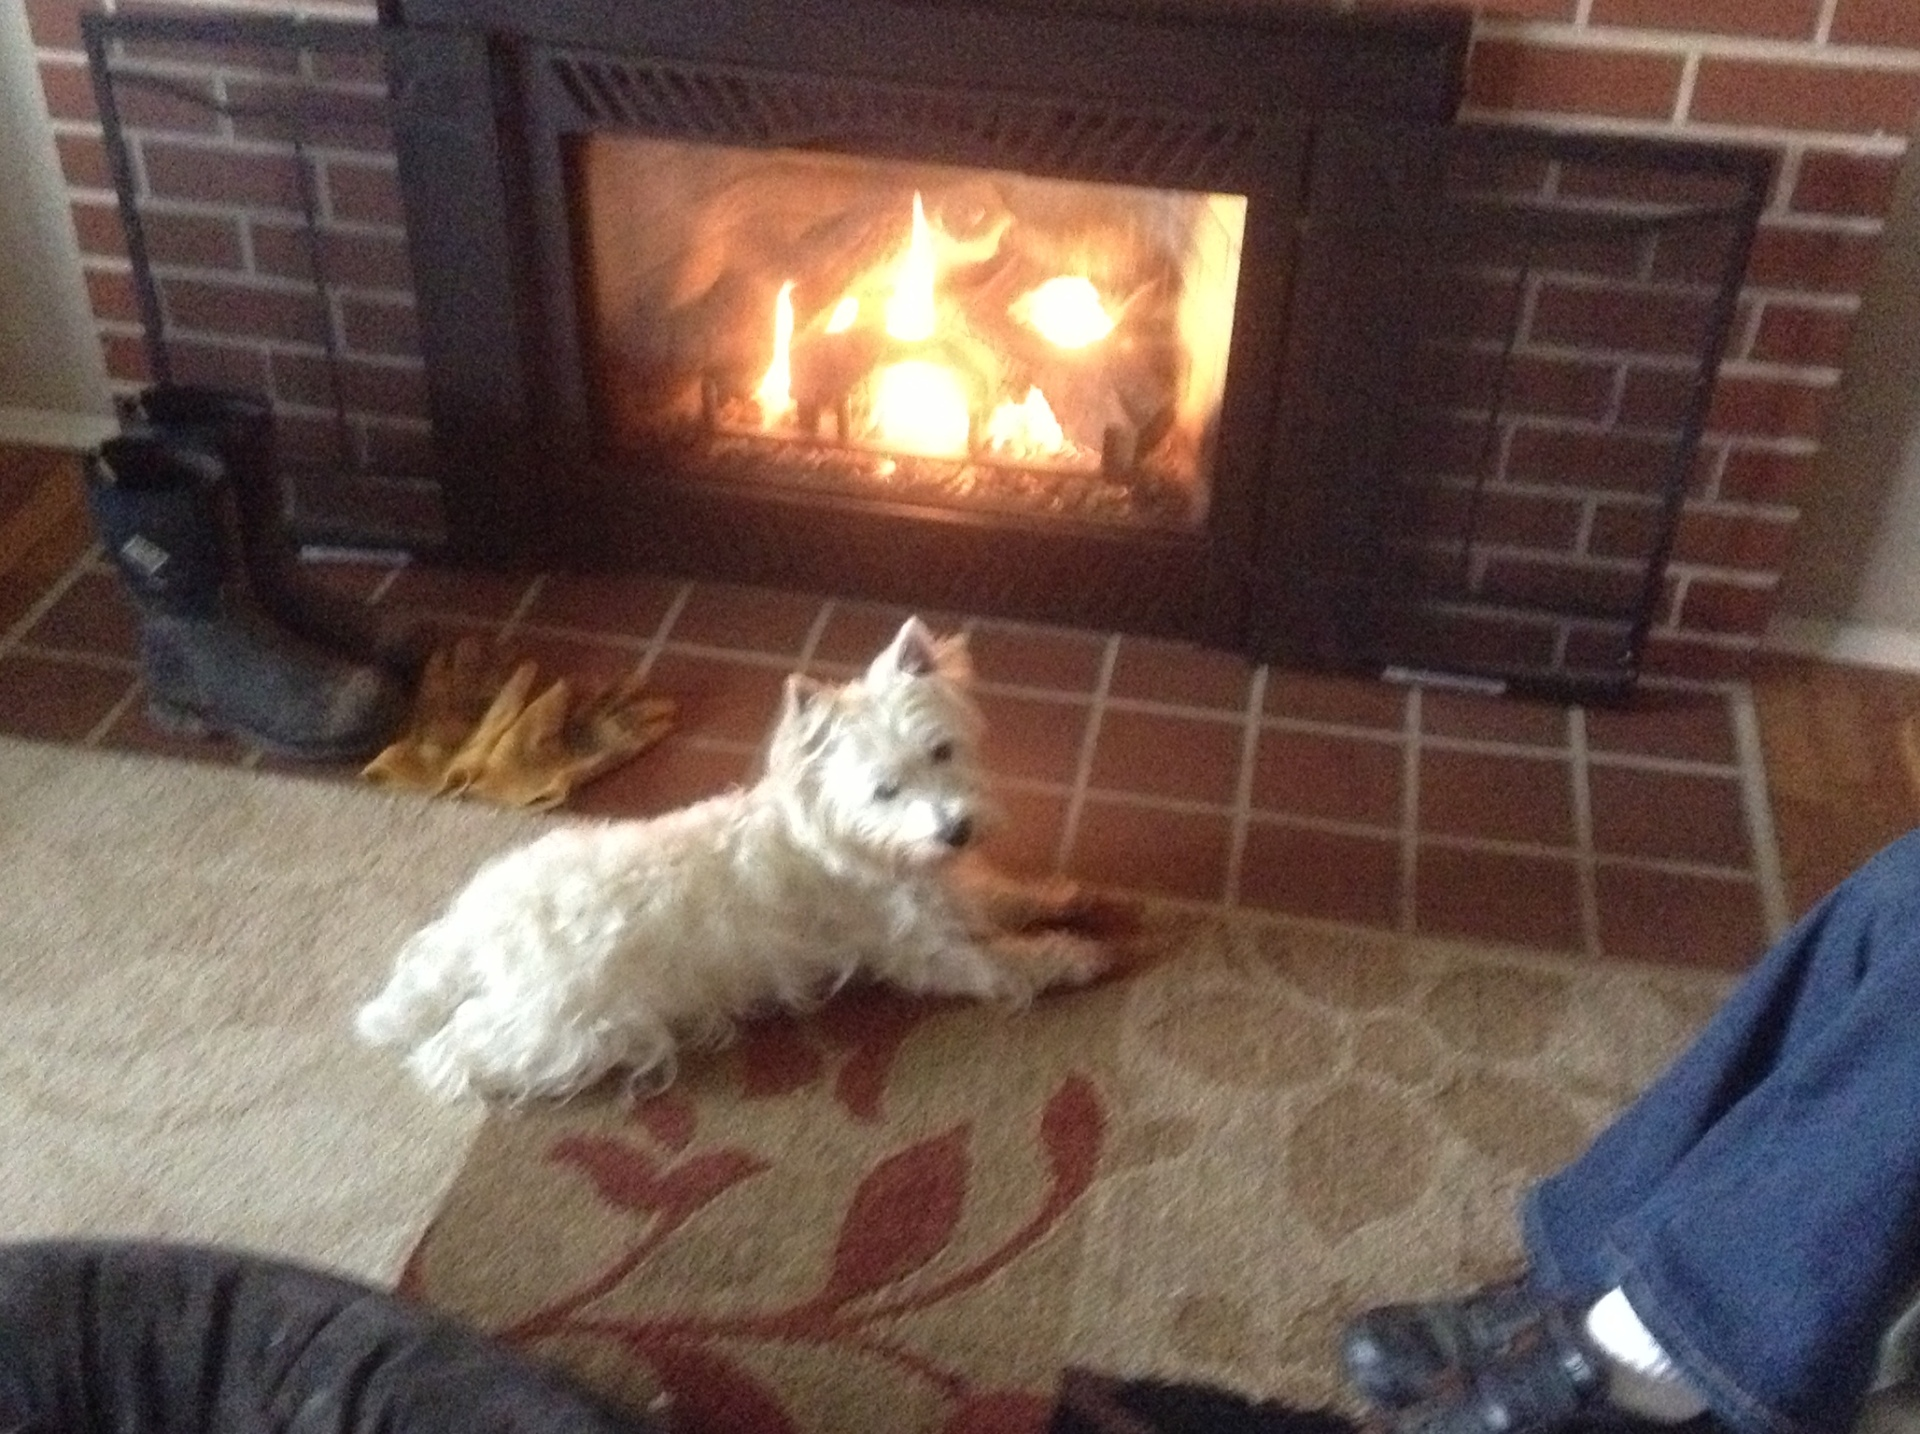 senior dog resting by fire place